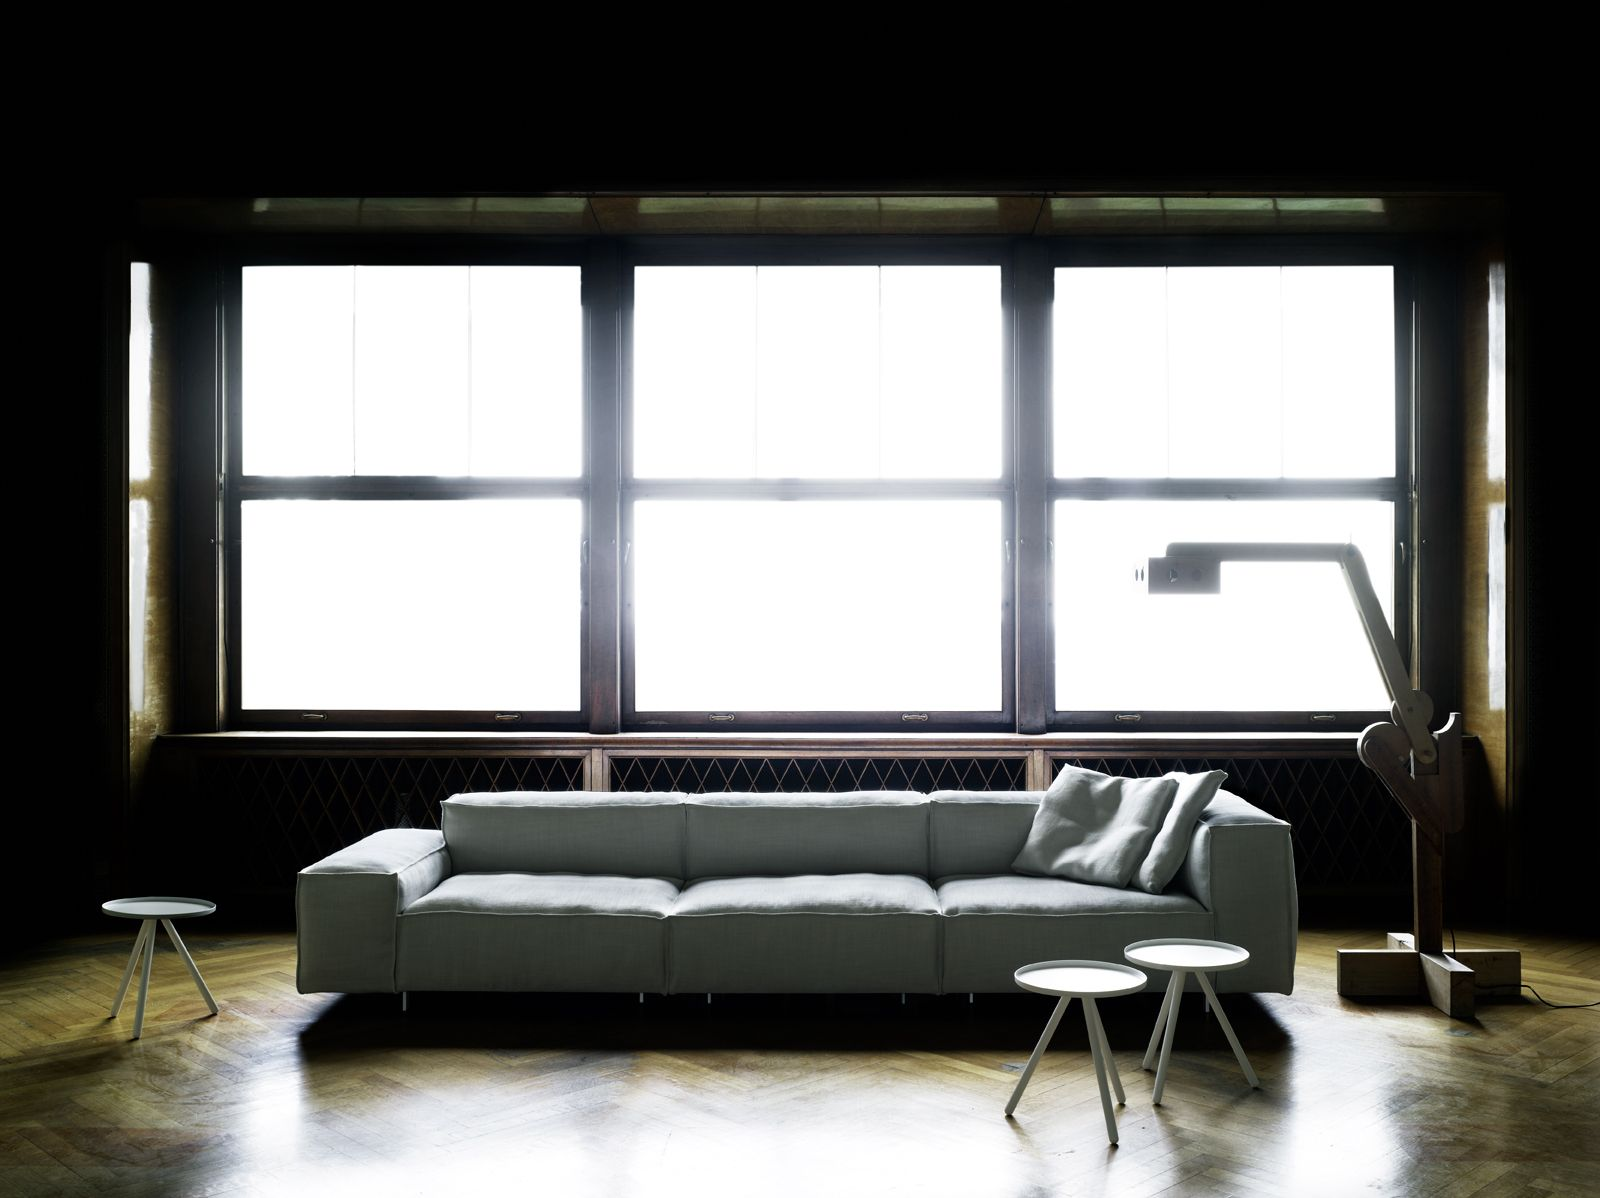 Focus On Furniture Sofa Bed Neowall Design Piero Lissoni Bolle Design Nathan Yong